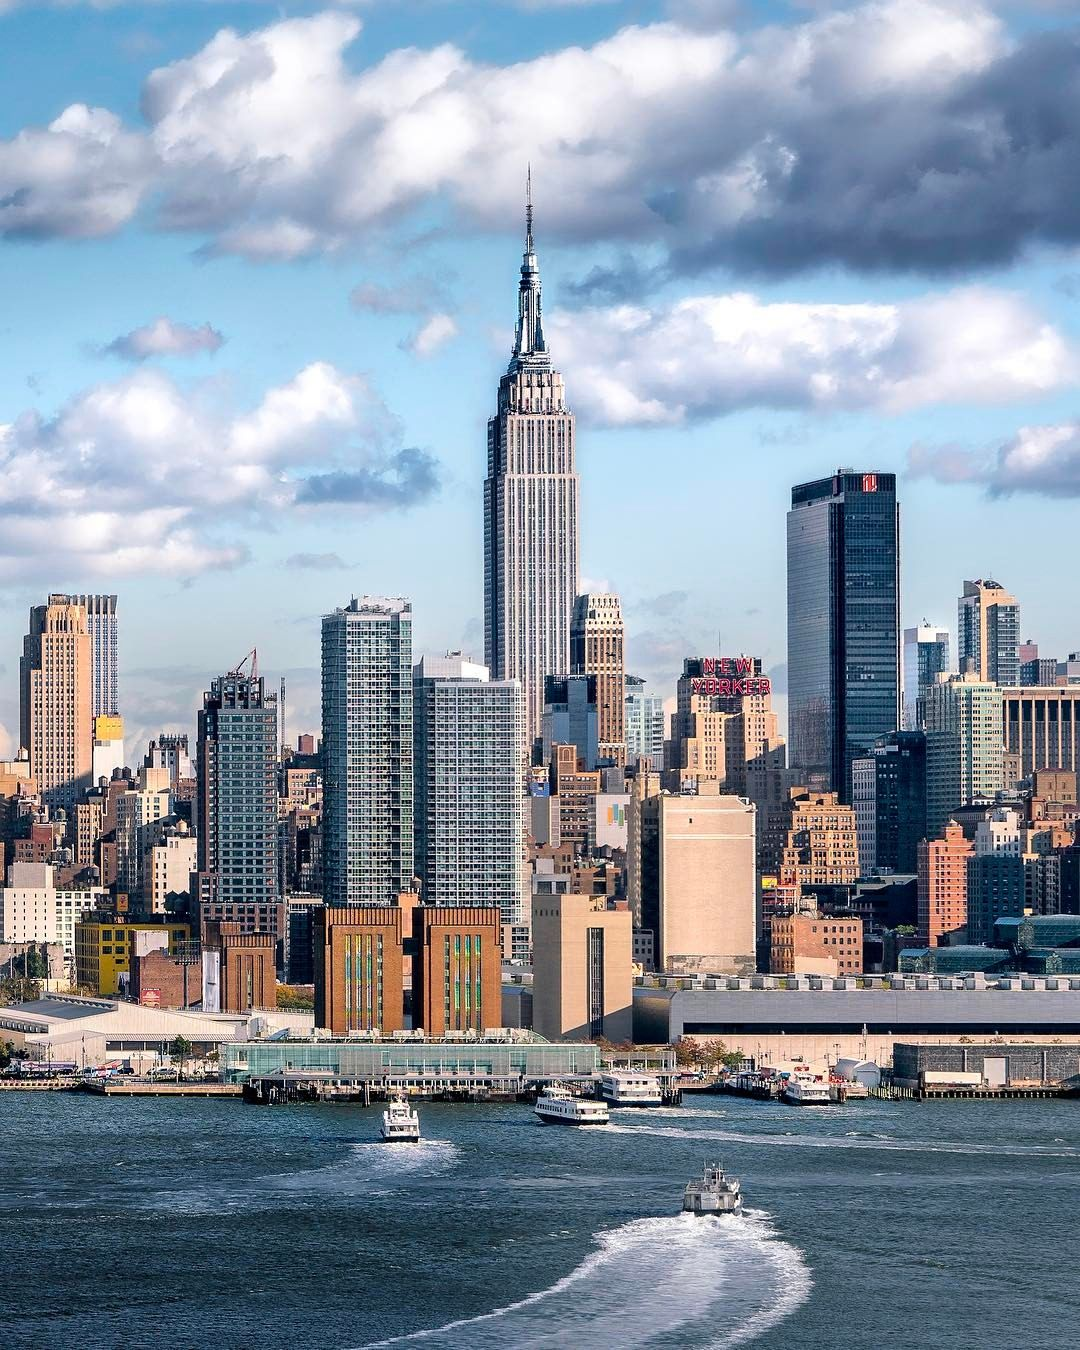 New York Skyline Wallpaper: New York City. One Of The Most Beautiful Things For Me To